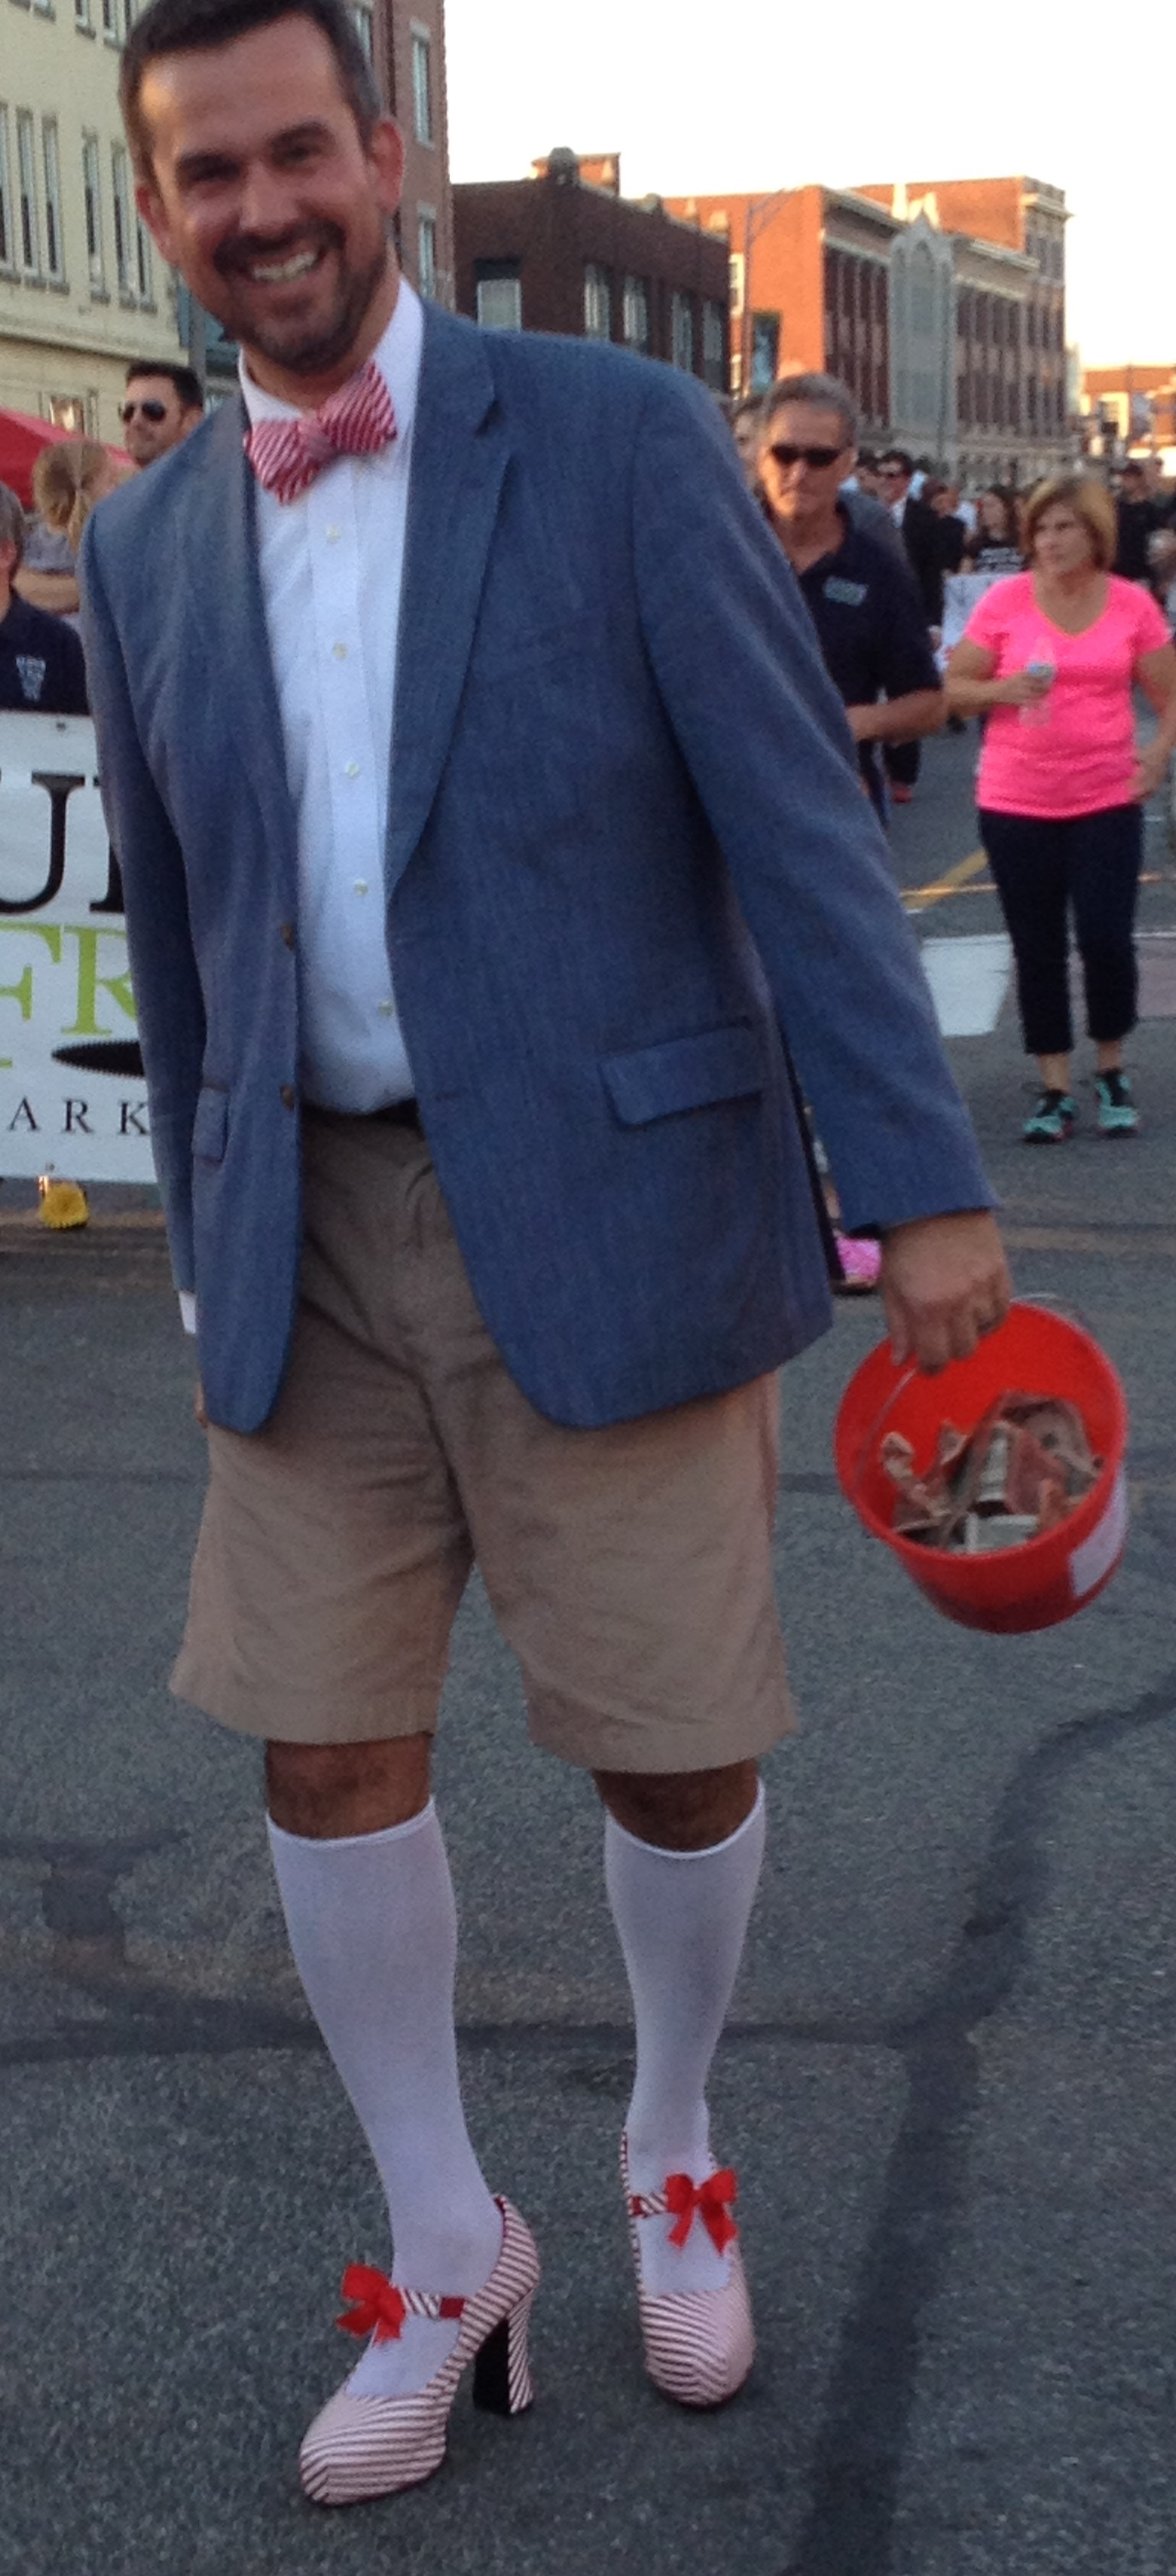 Walk a Mile 2015 walker with snazzy socks and shoes